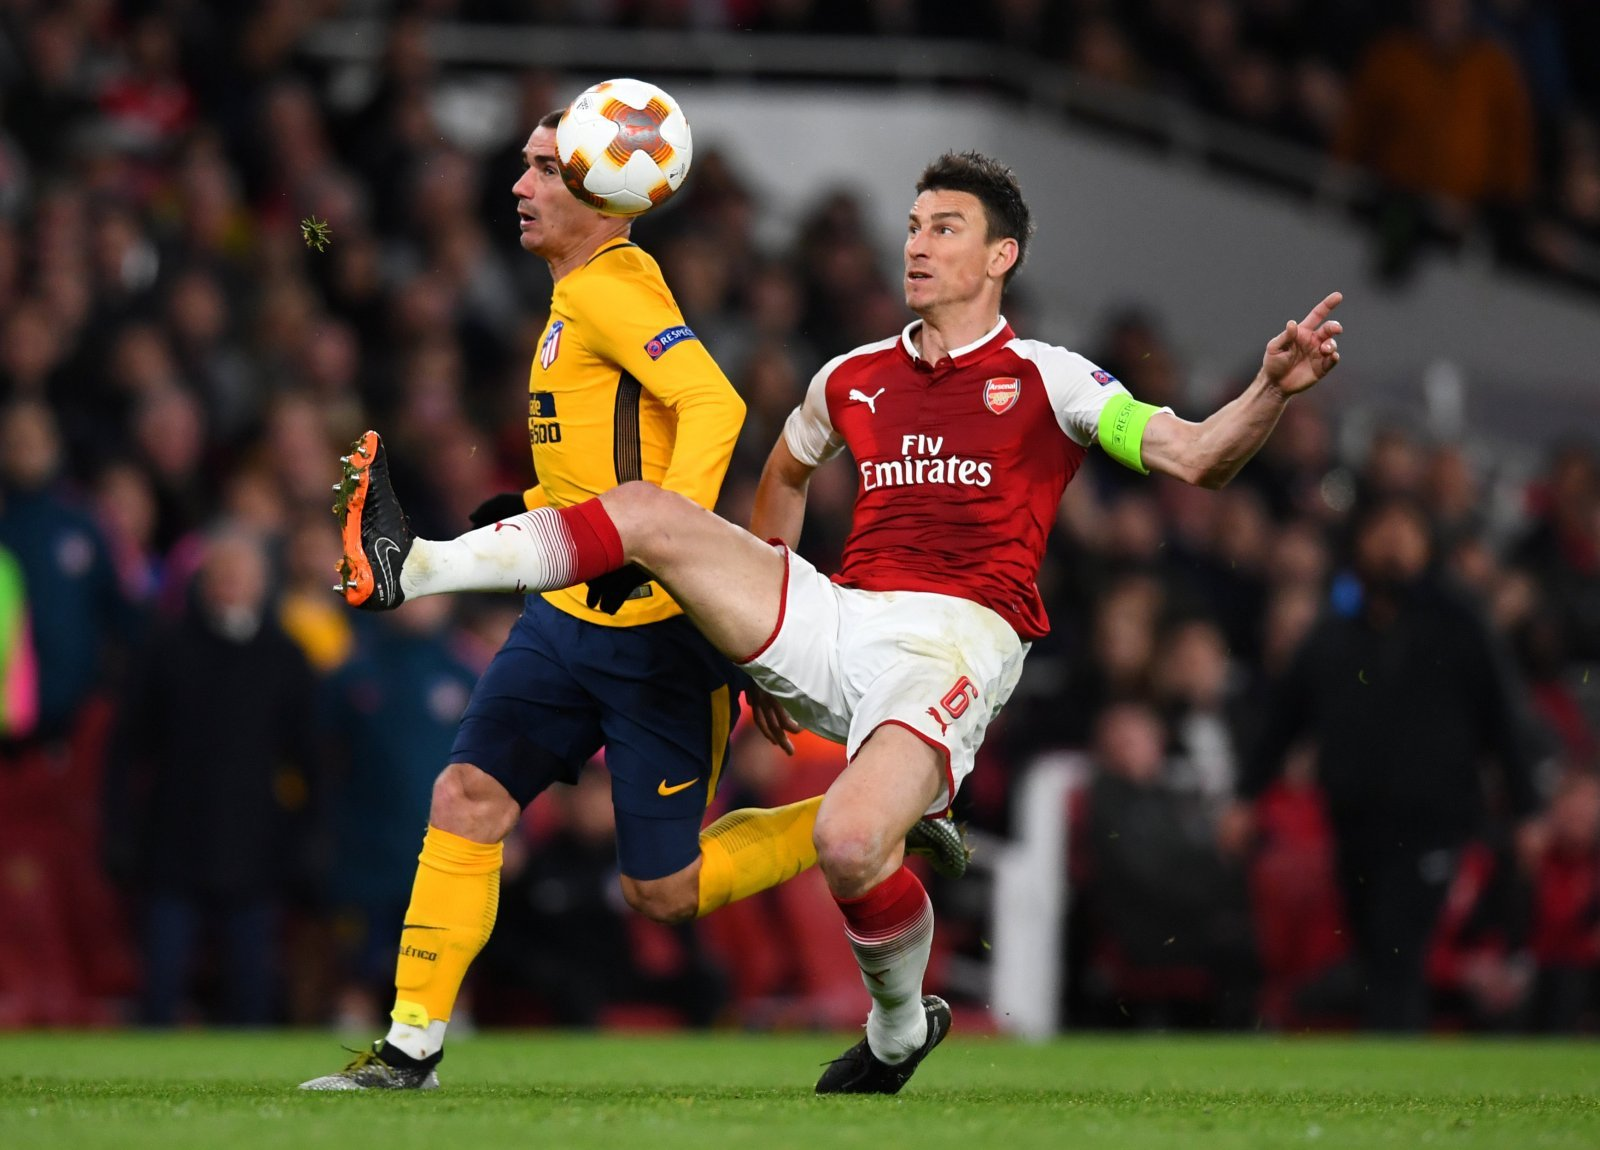 Arsenal fans are so wrong: Sanctioning Laurent Koscielny's departure would be a massive mistake